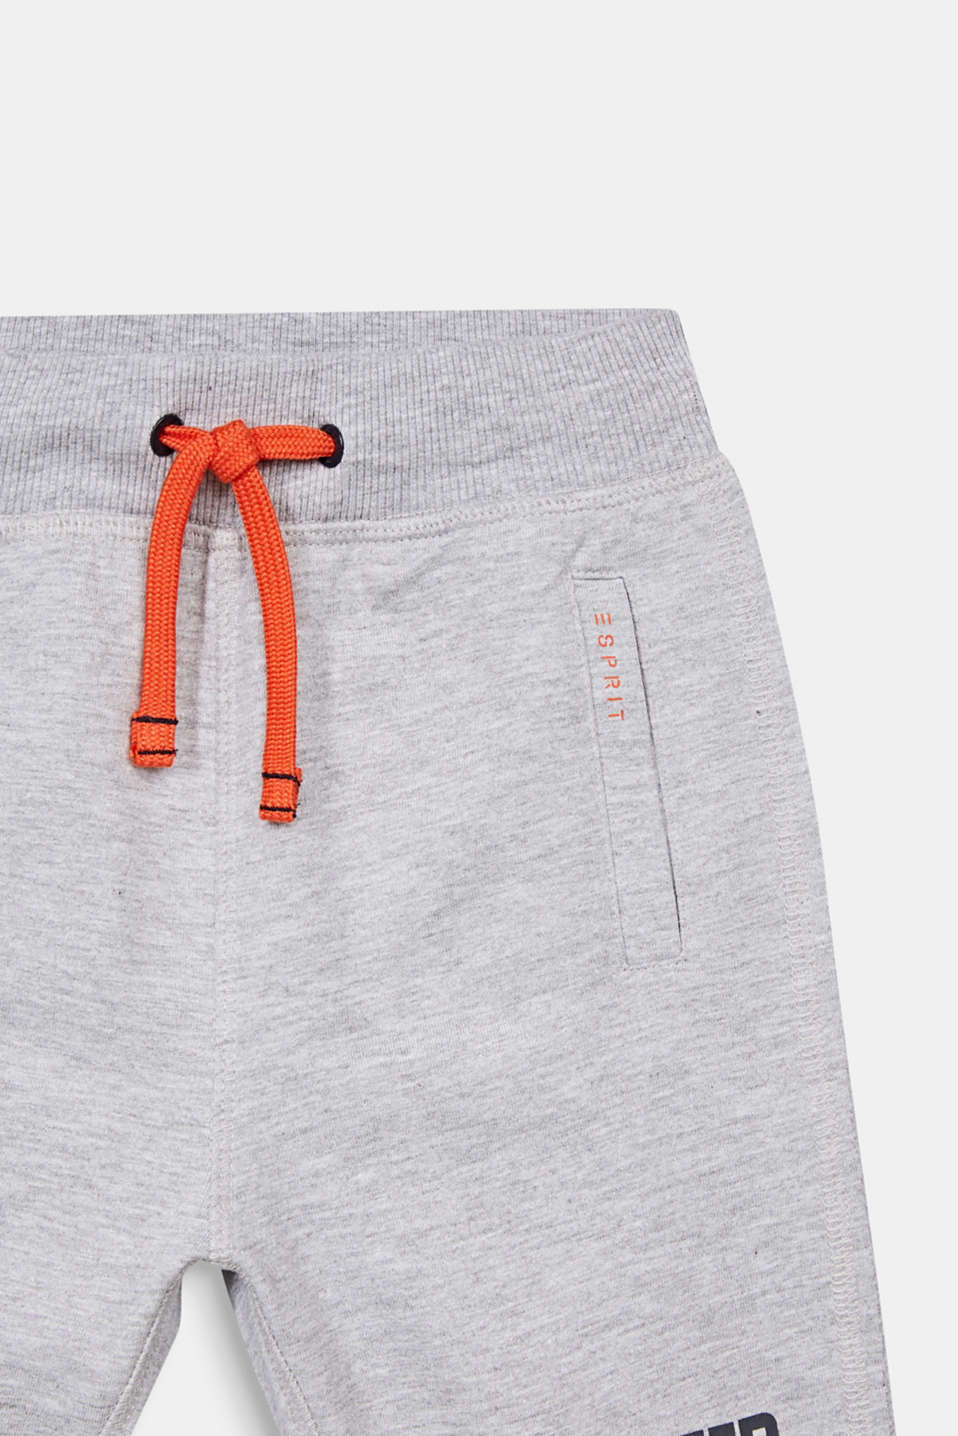 Sweatshirt shorts with a print, 100% cotton, HEATHER SILVER, detail image number 2